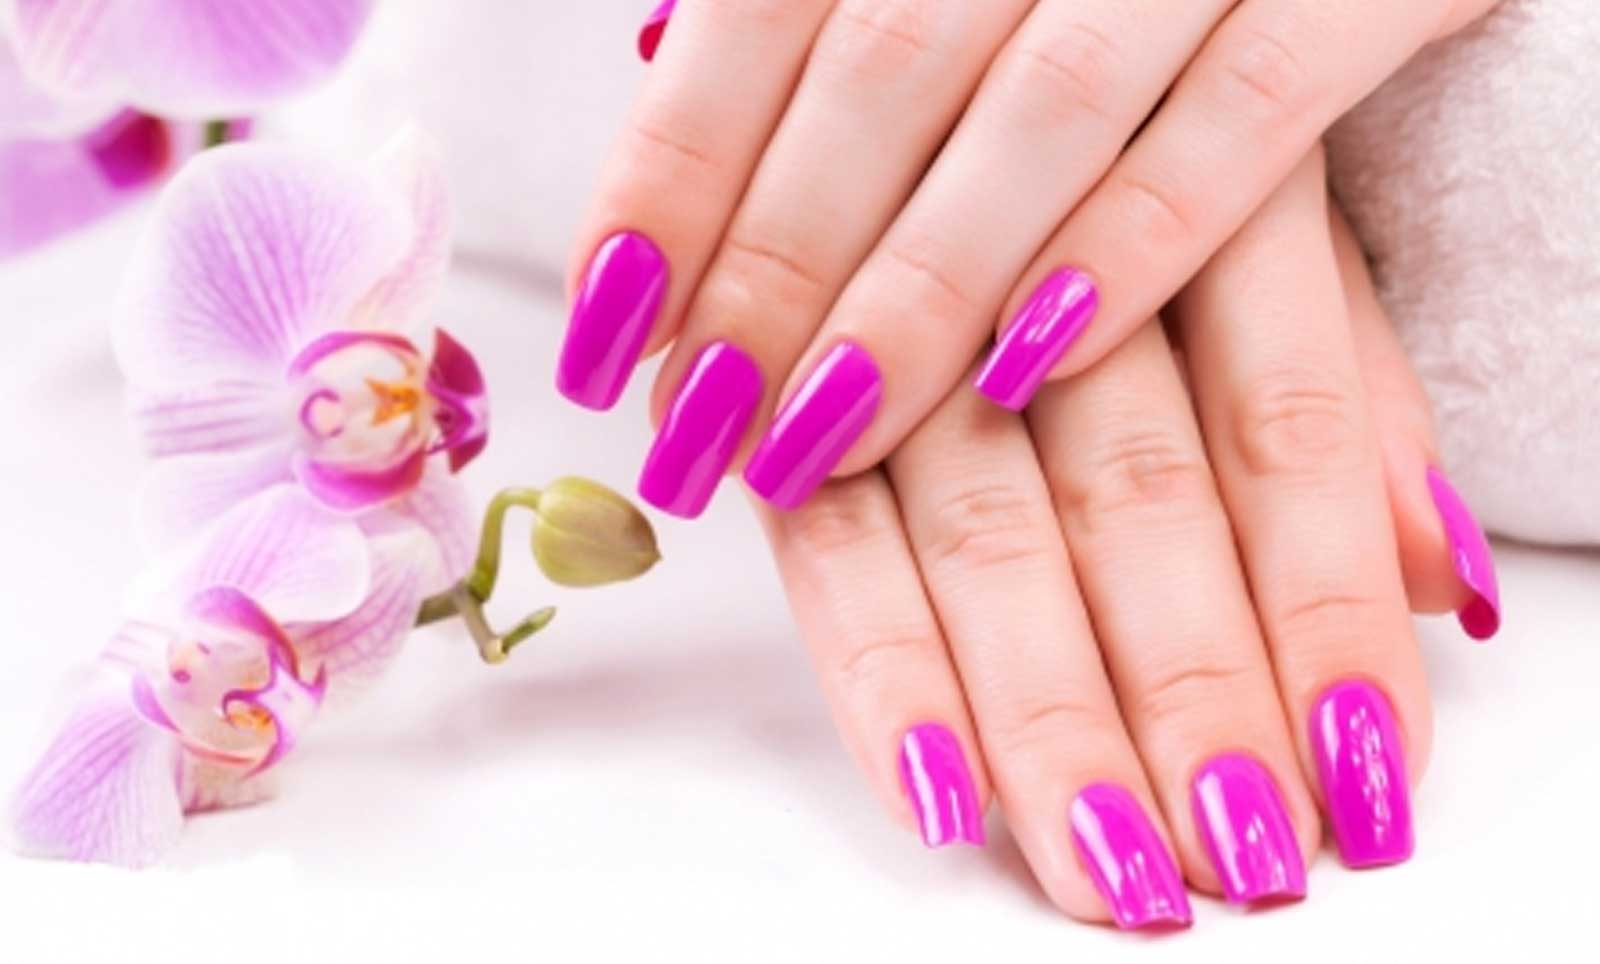 Broadway Nail Bar - Nail salon in Knoxville, Tennessee 37918